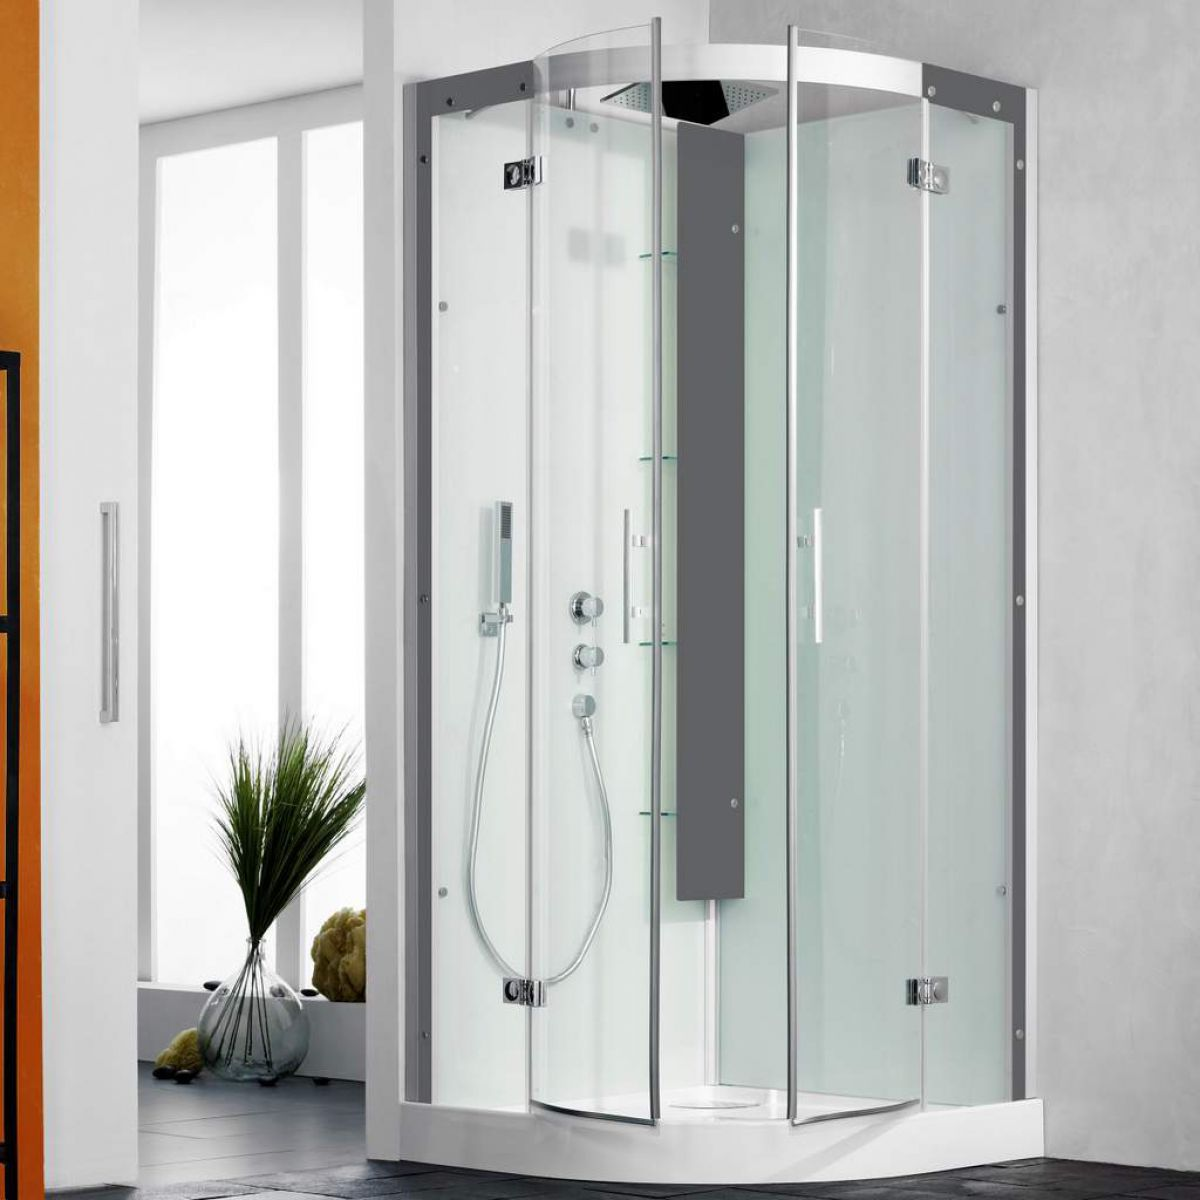 Kinedo Horizon Pivot Door Quadrant Shower Cubicle